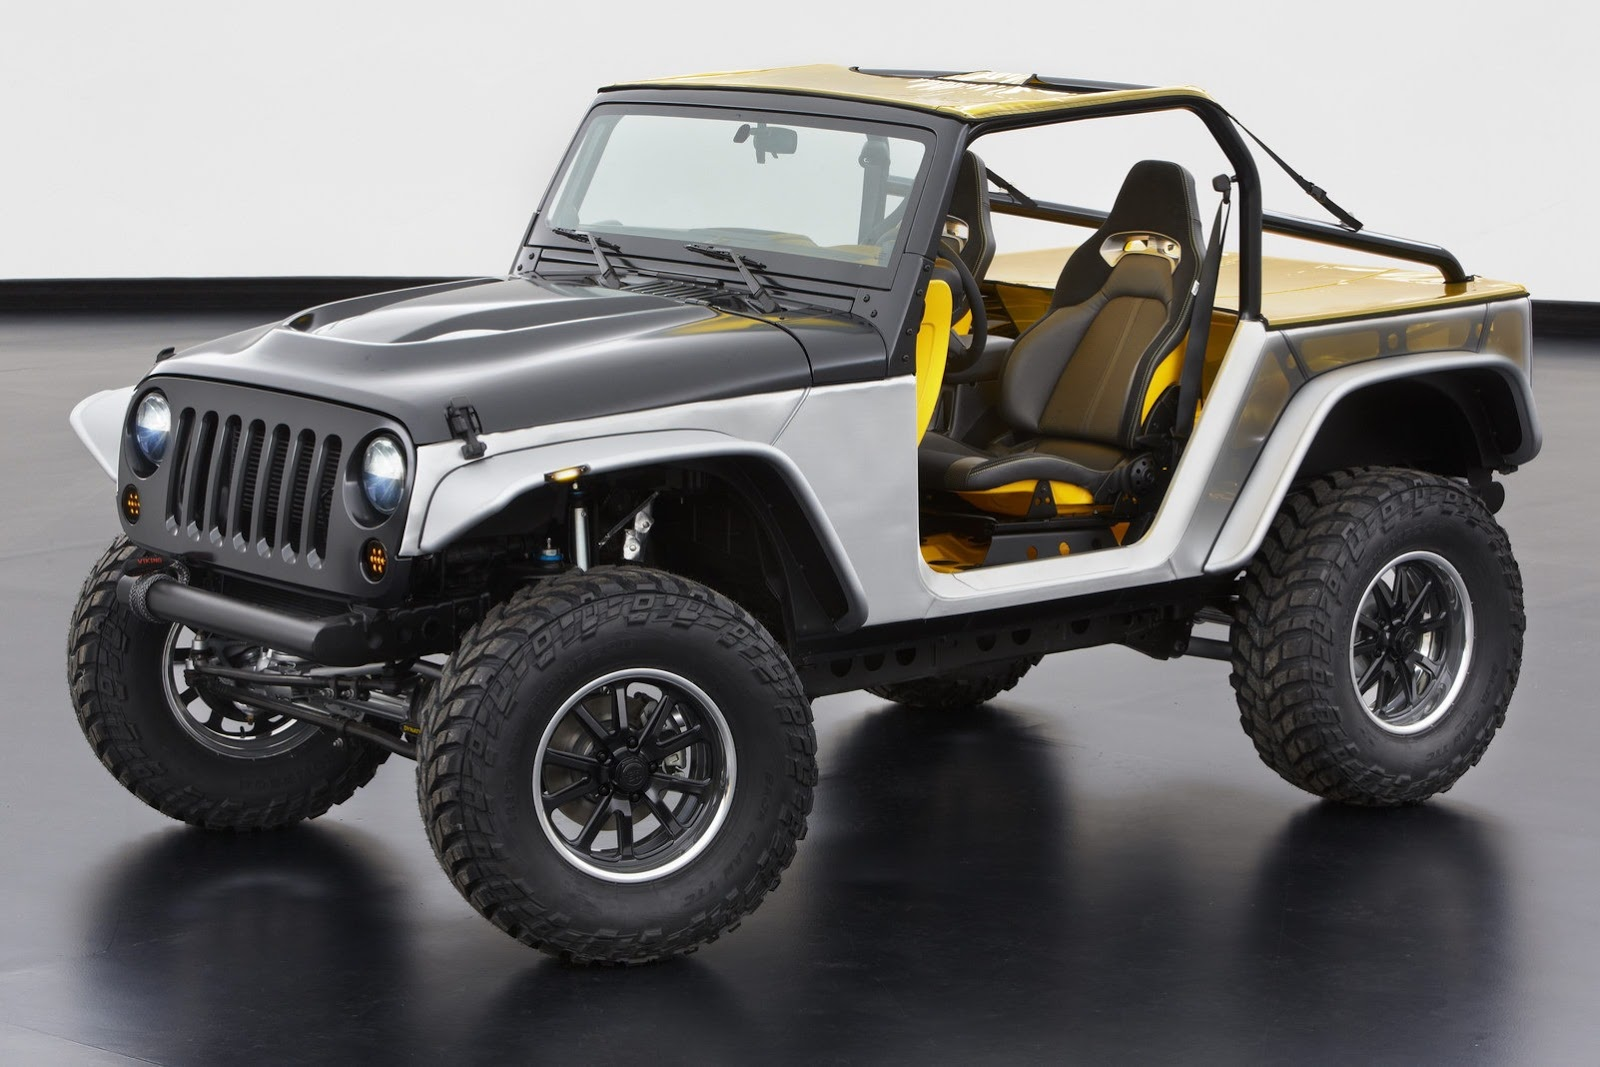 Jeep To Deliver A Six Pack Of Off Road Concepts For Easter - AutoSpies